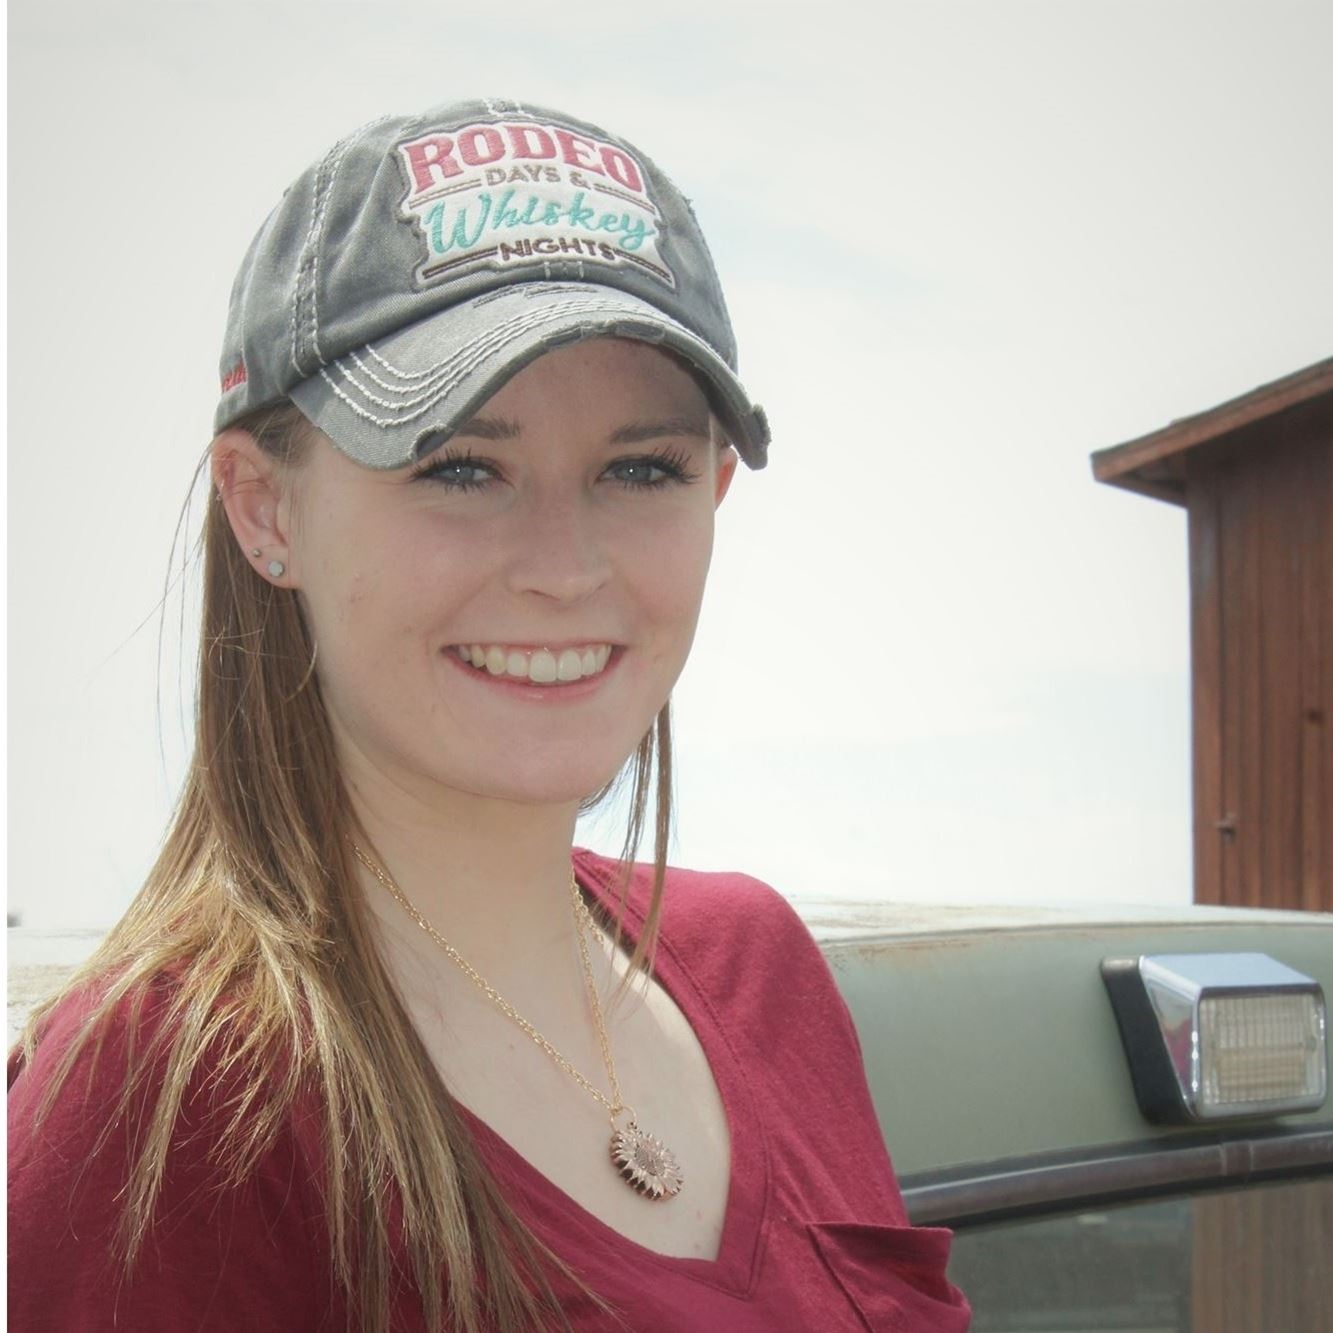 Rodeo Days Hat